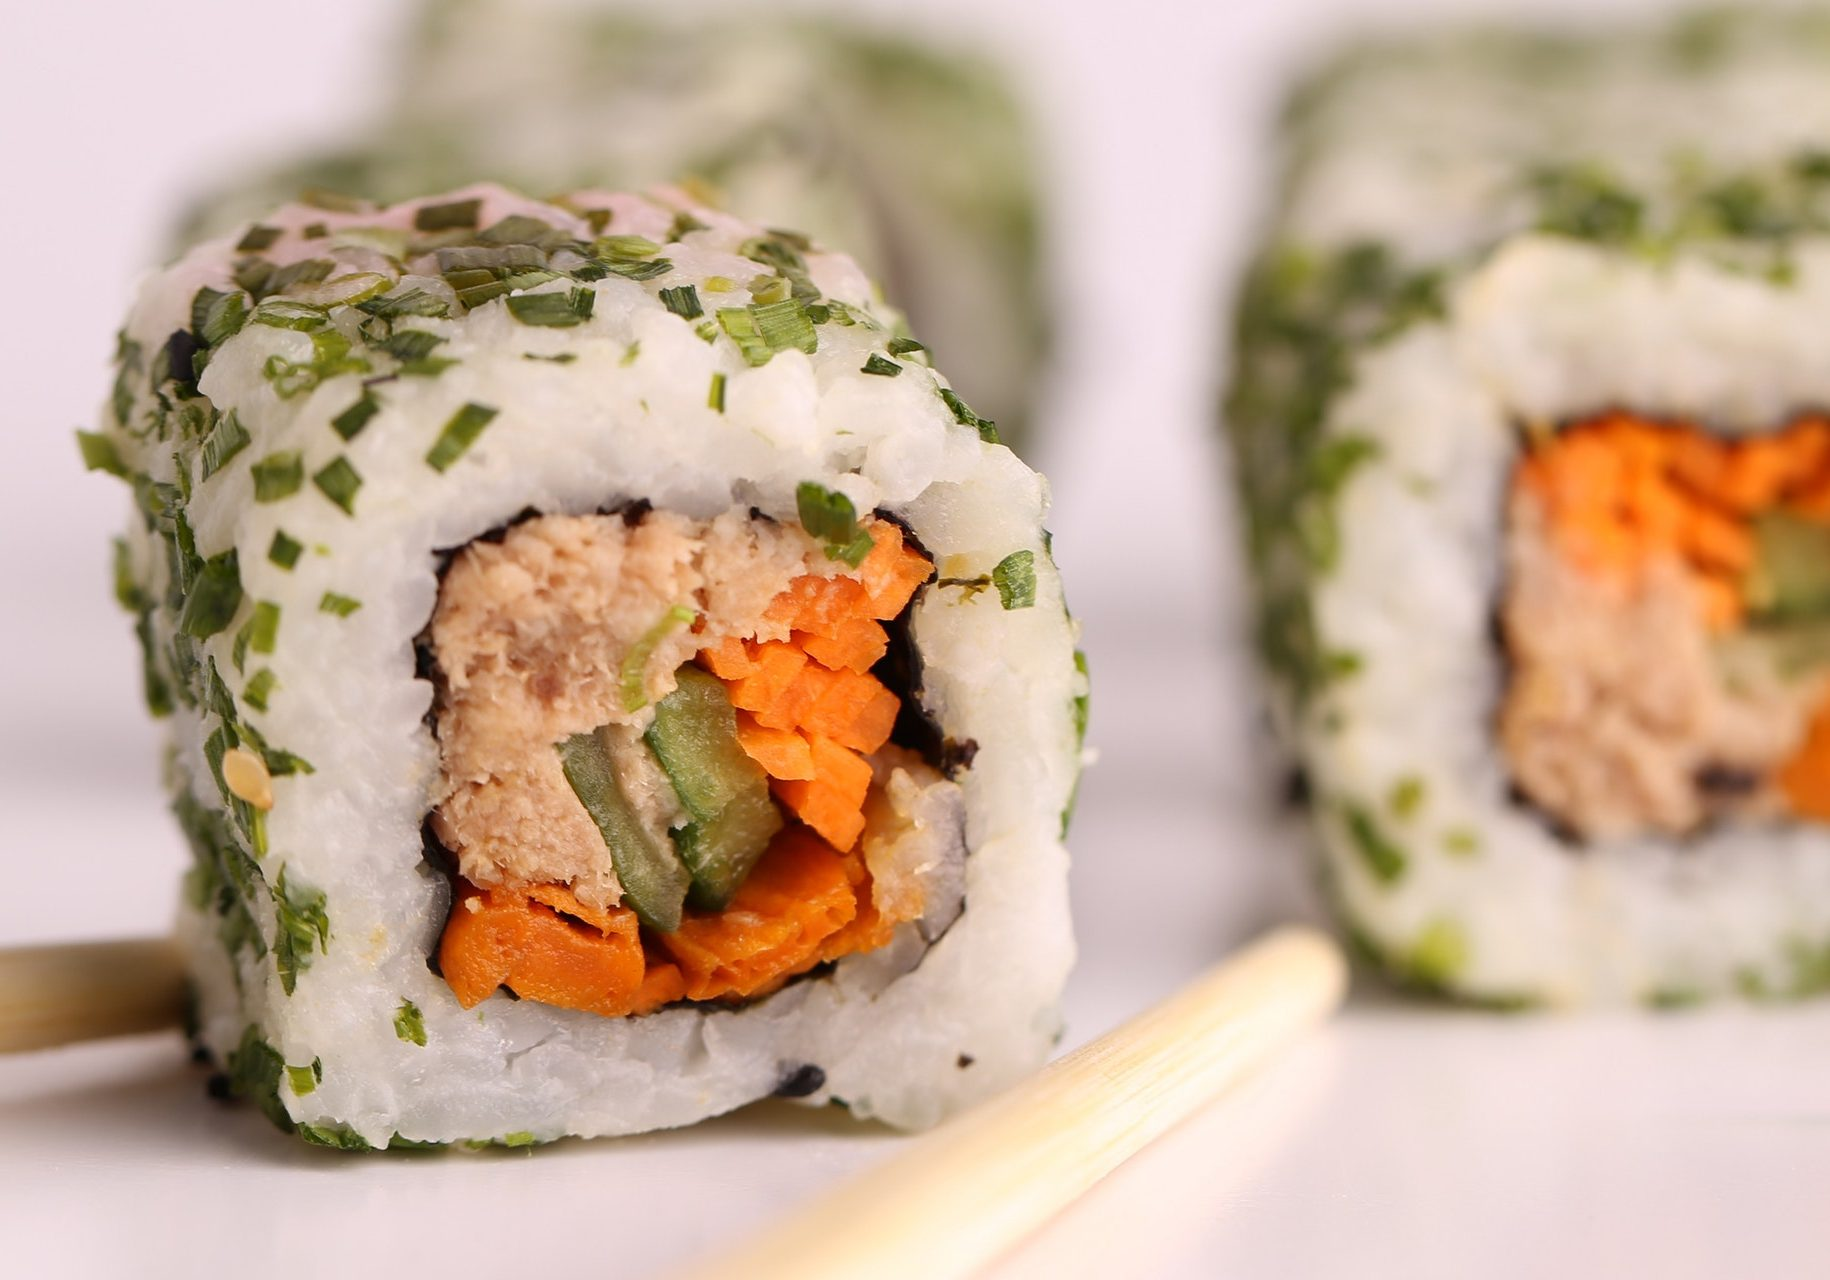 sushi-on-plate-327172